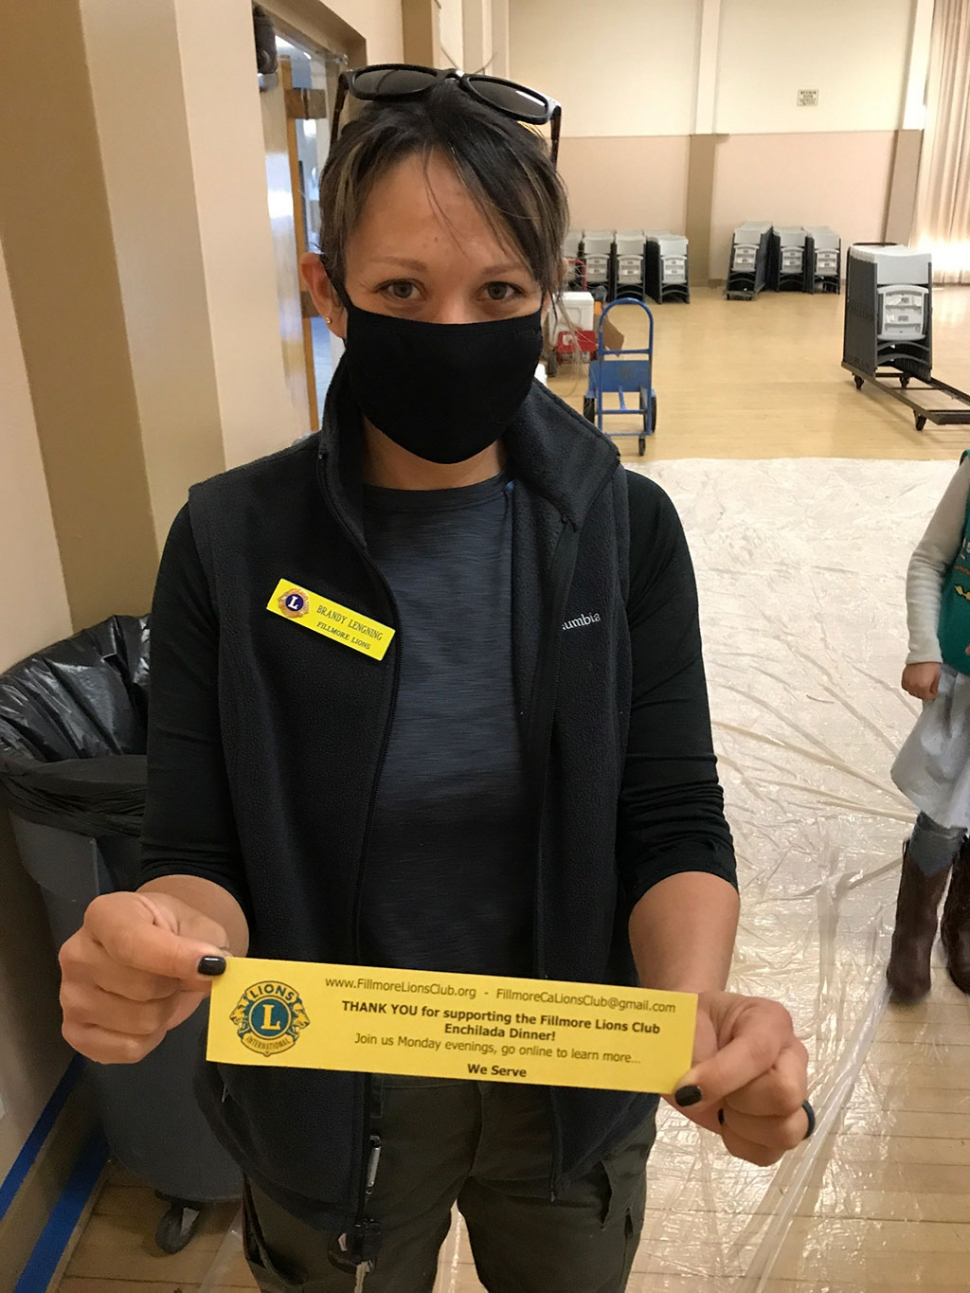 Lion Club member Brandy Lengning holding up a thank you slip.